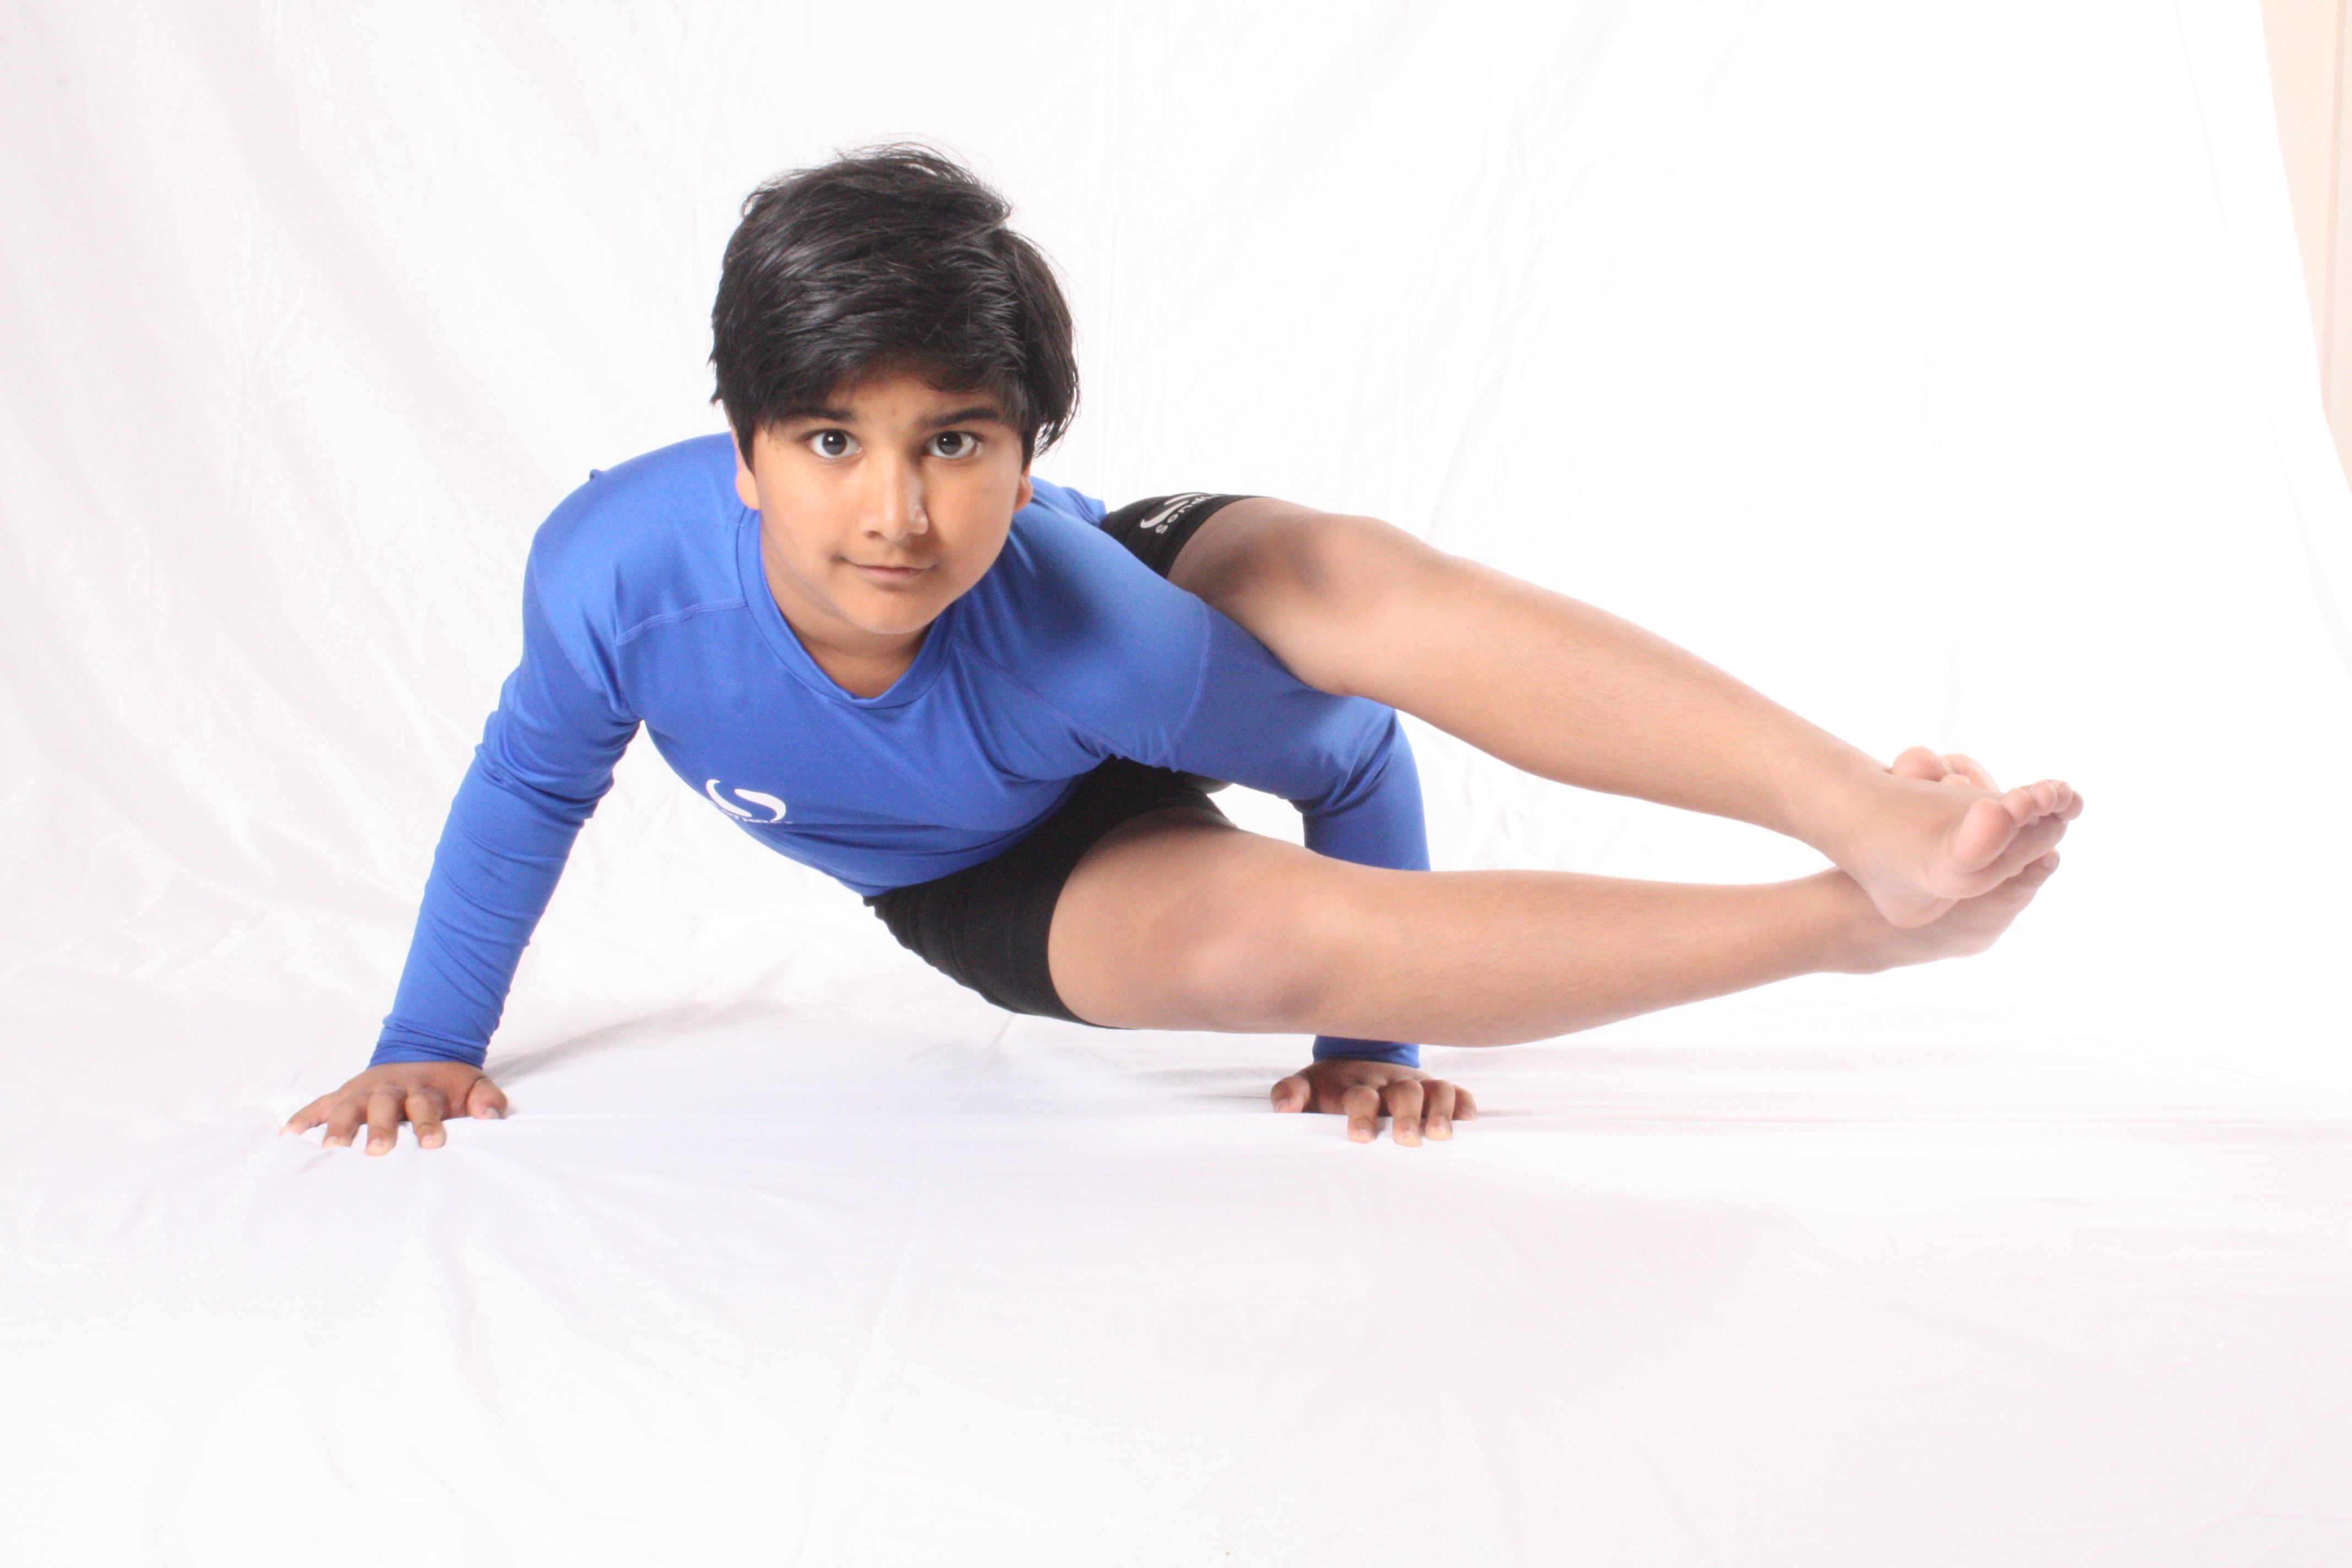 Ishwar is the 1646th person to be recognised by the UK daily Points of Light award.